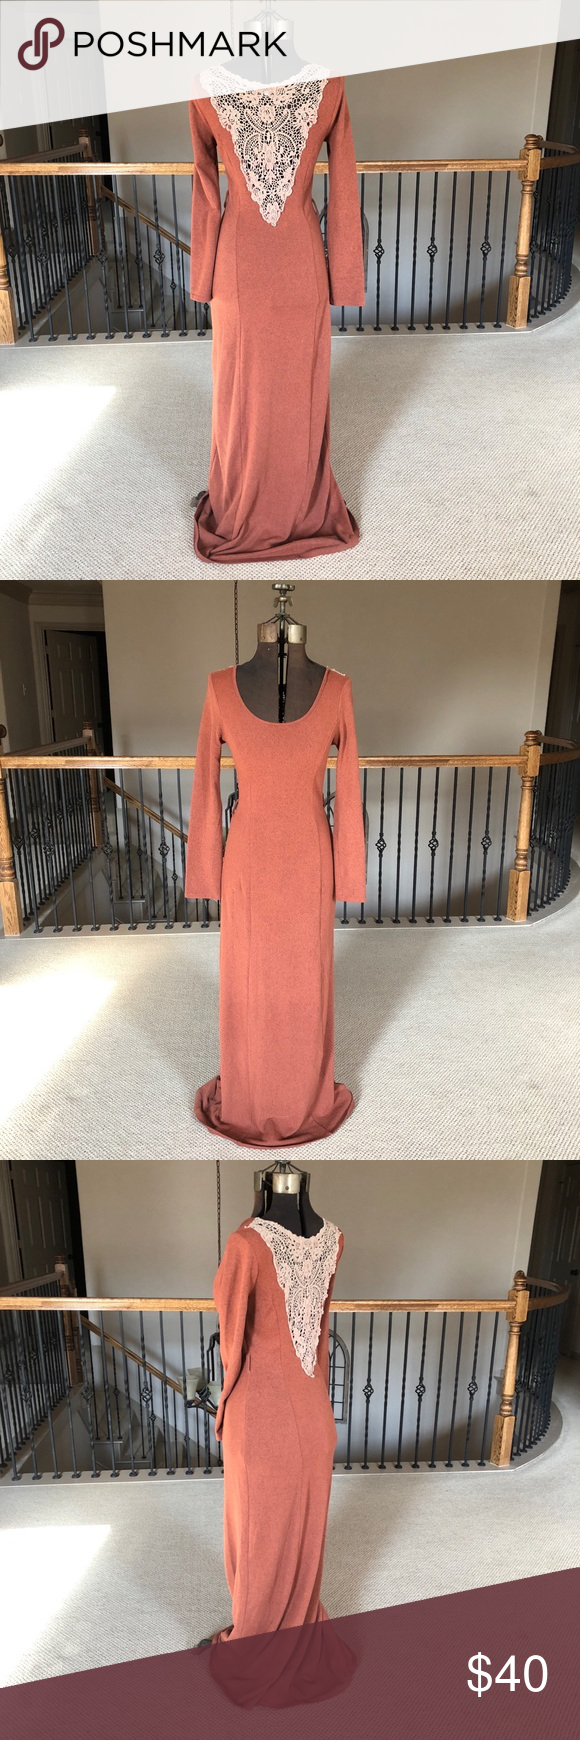 Altarud state long sleeve burnt orange maxi dress stretchy and form